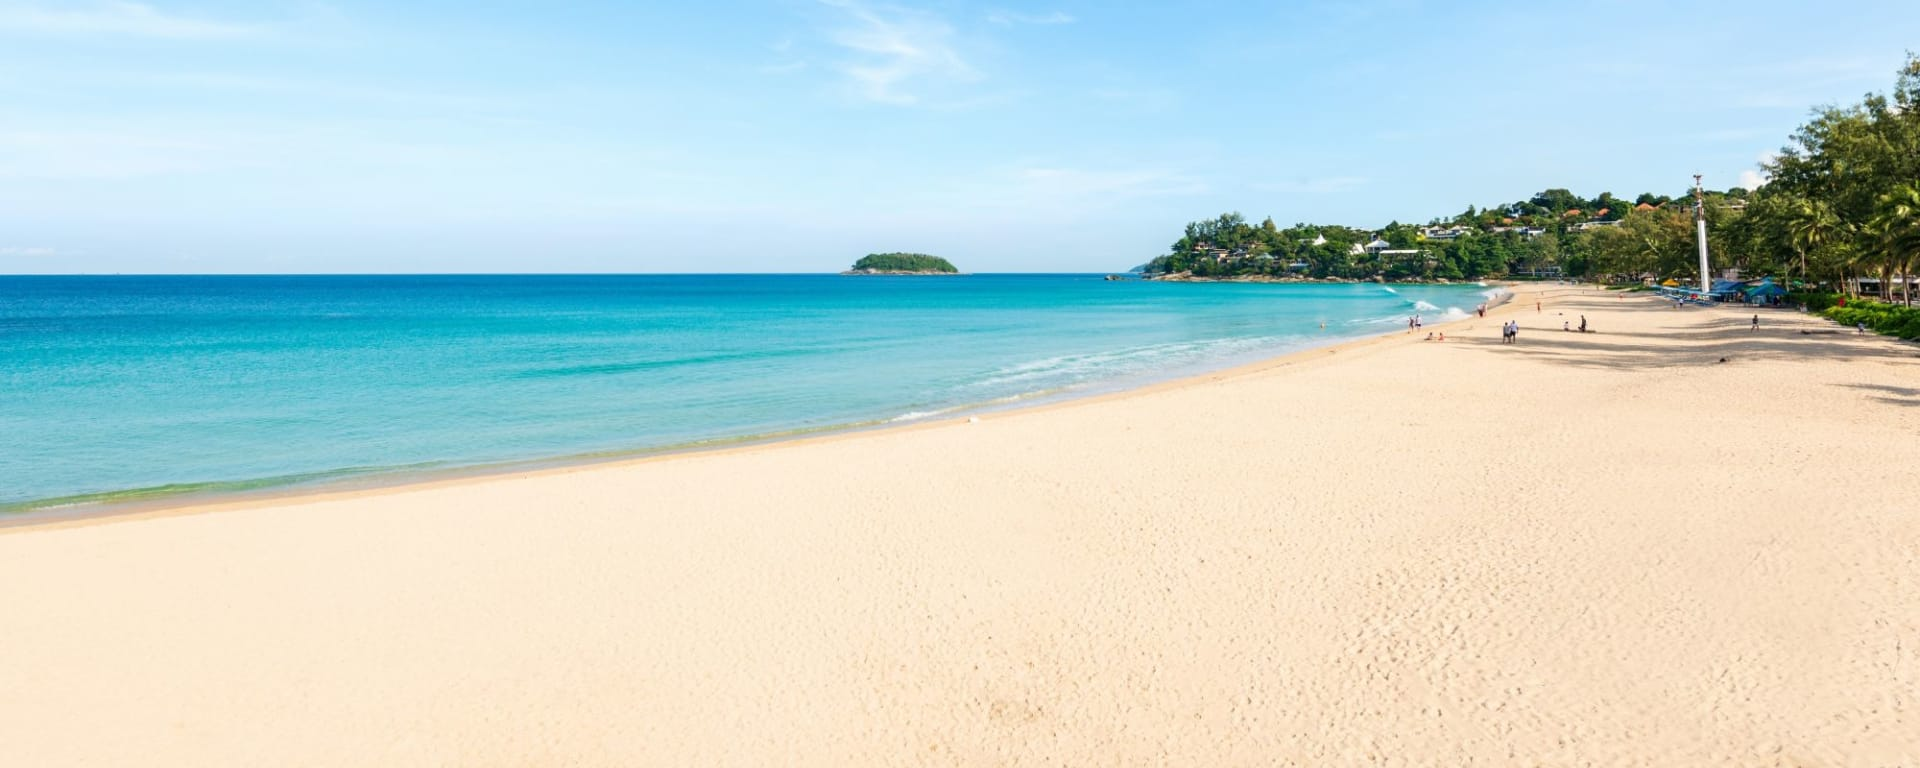 The Shore at Katathani in Phuket: Kata Noi Beach